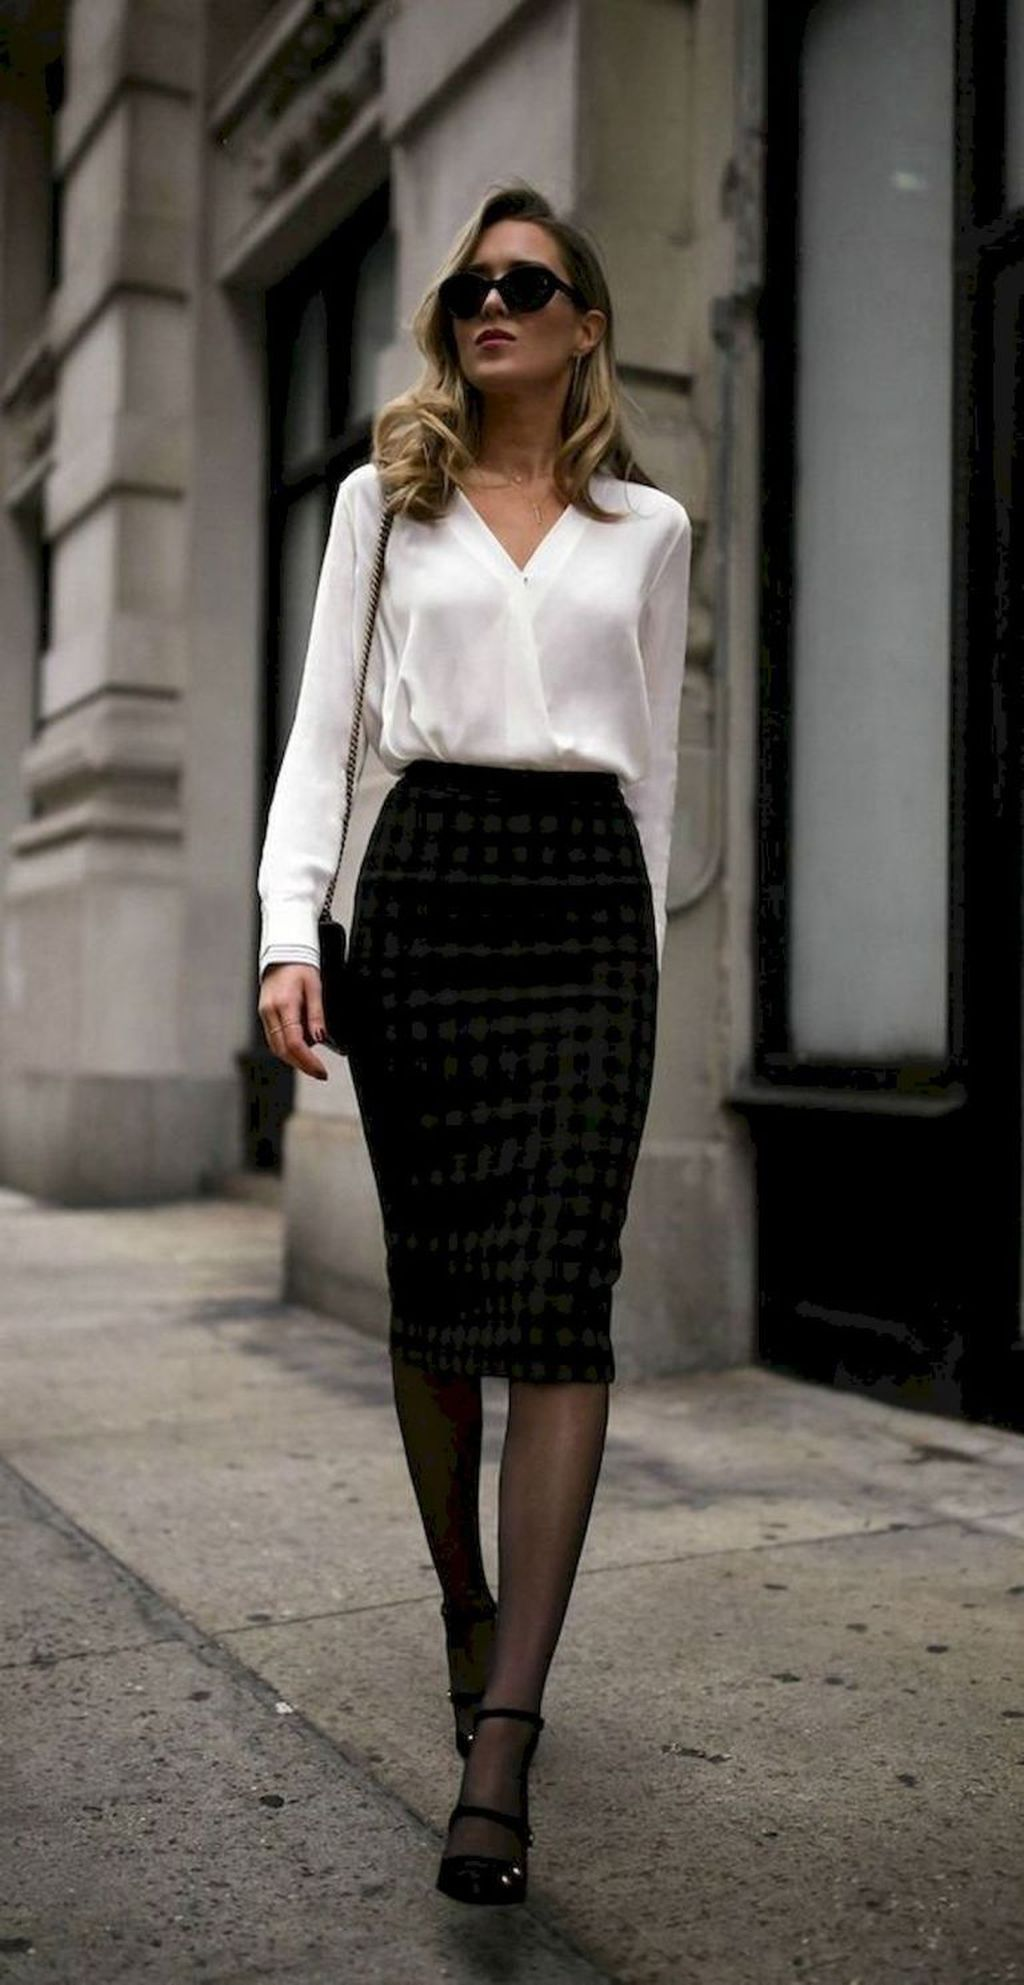 30+ Newest Business Work Outfits Ideas For Women On 2019 #womensbusinessattire